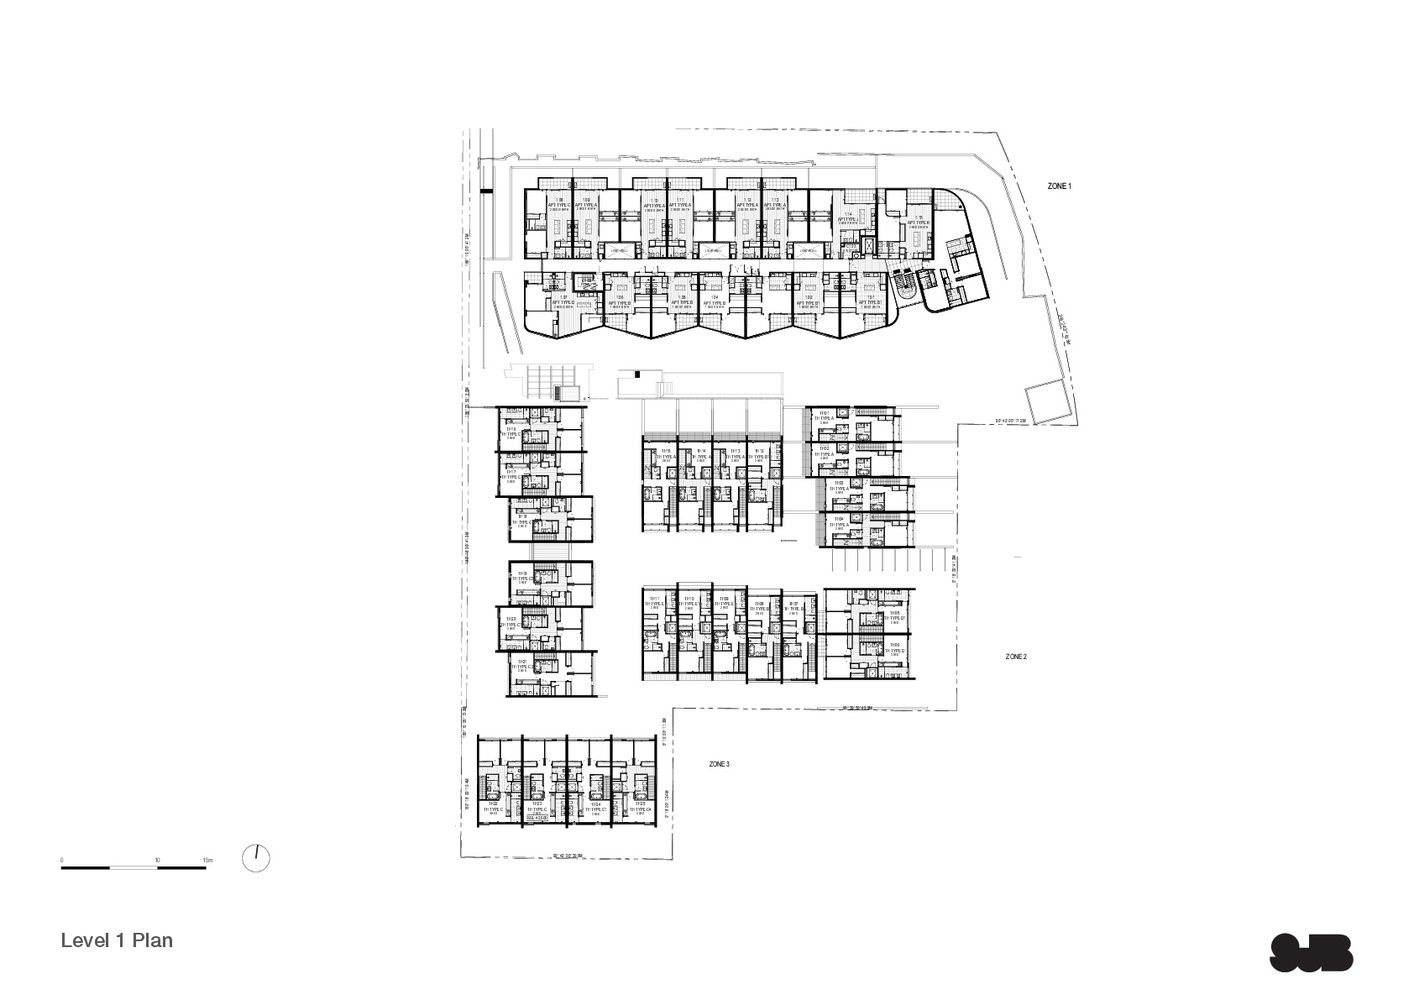 Gallery of Cantala / SJB - 21 | How to plan, Floor plans ... on wood house plans, car house plans, bottle house plans, frame house plans, tube house plans, panel house plans, computer house plans, roof house plans, puppet house plans, roll house plans, floor house plans, worm house plans, head house plans, electric house plans, box house plans, kitchen house plans, door house plans, light house plans, storage house plans, building house plans,